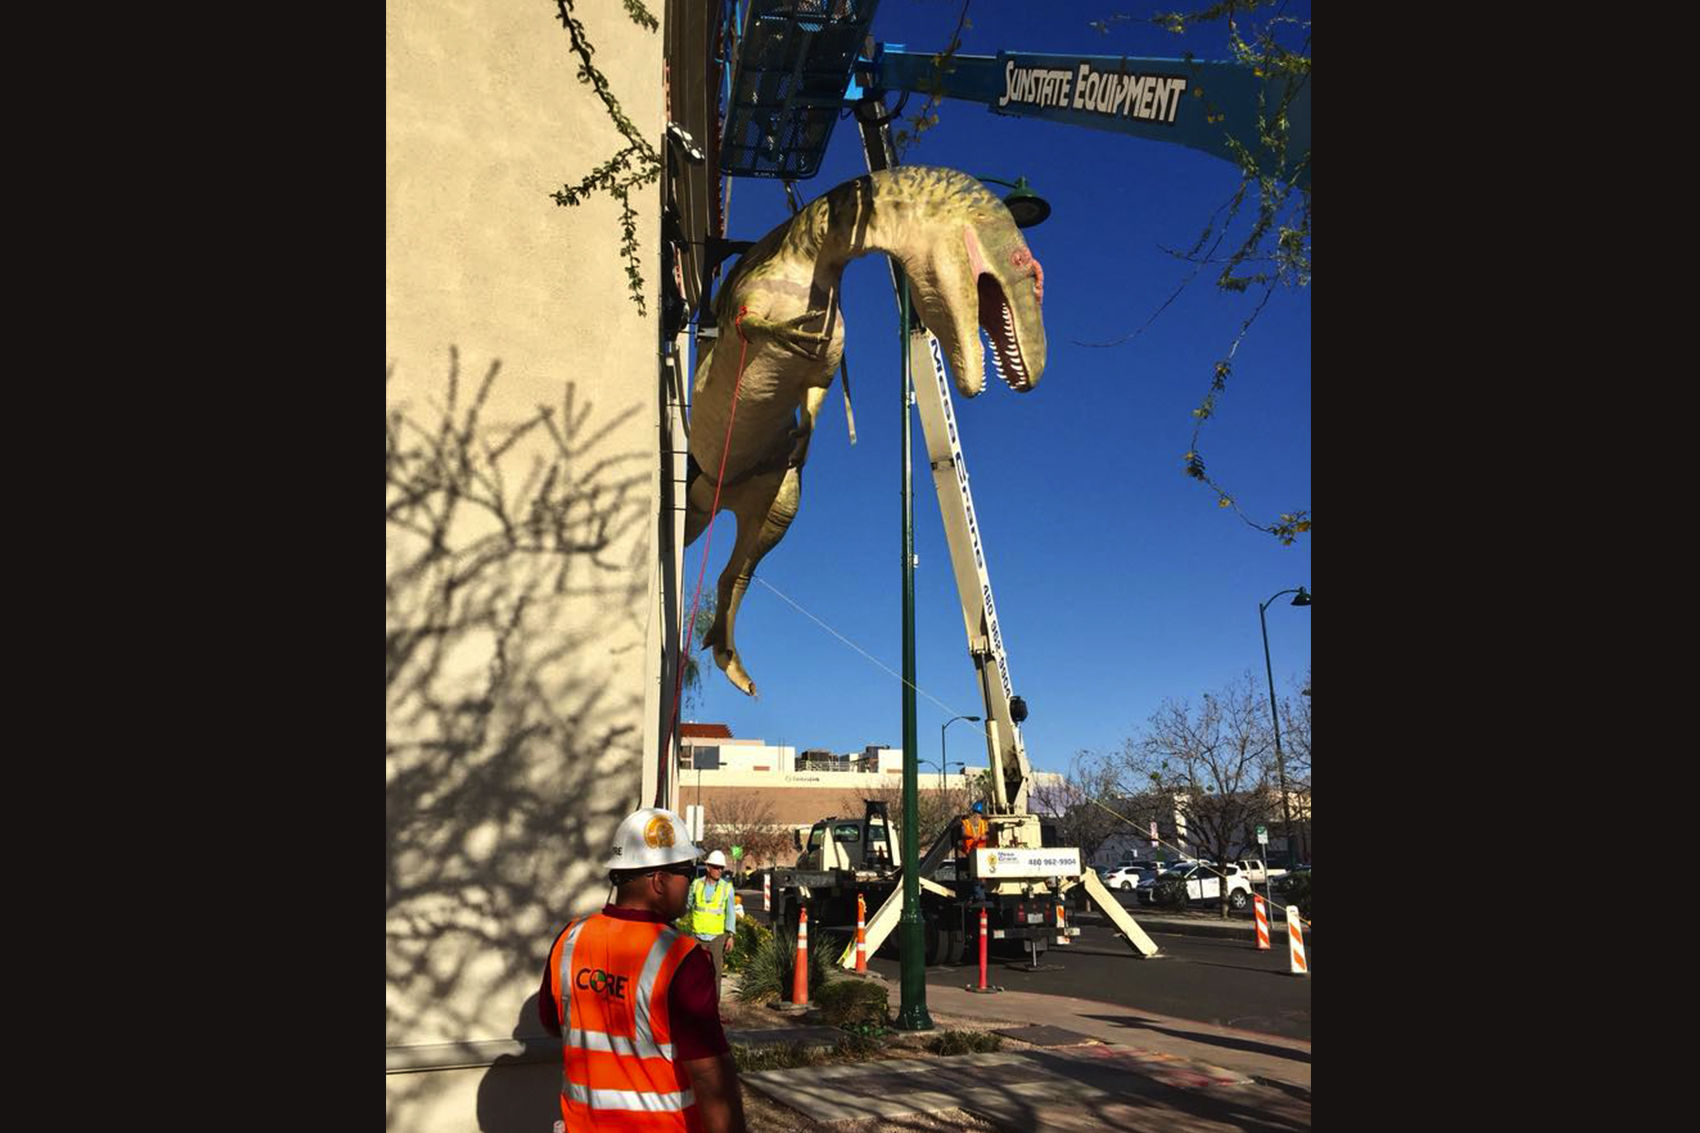 Realistic dinosaur replica will start hanging out in Mesa | East Valley Tribune